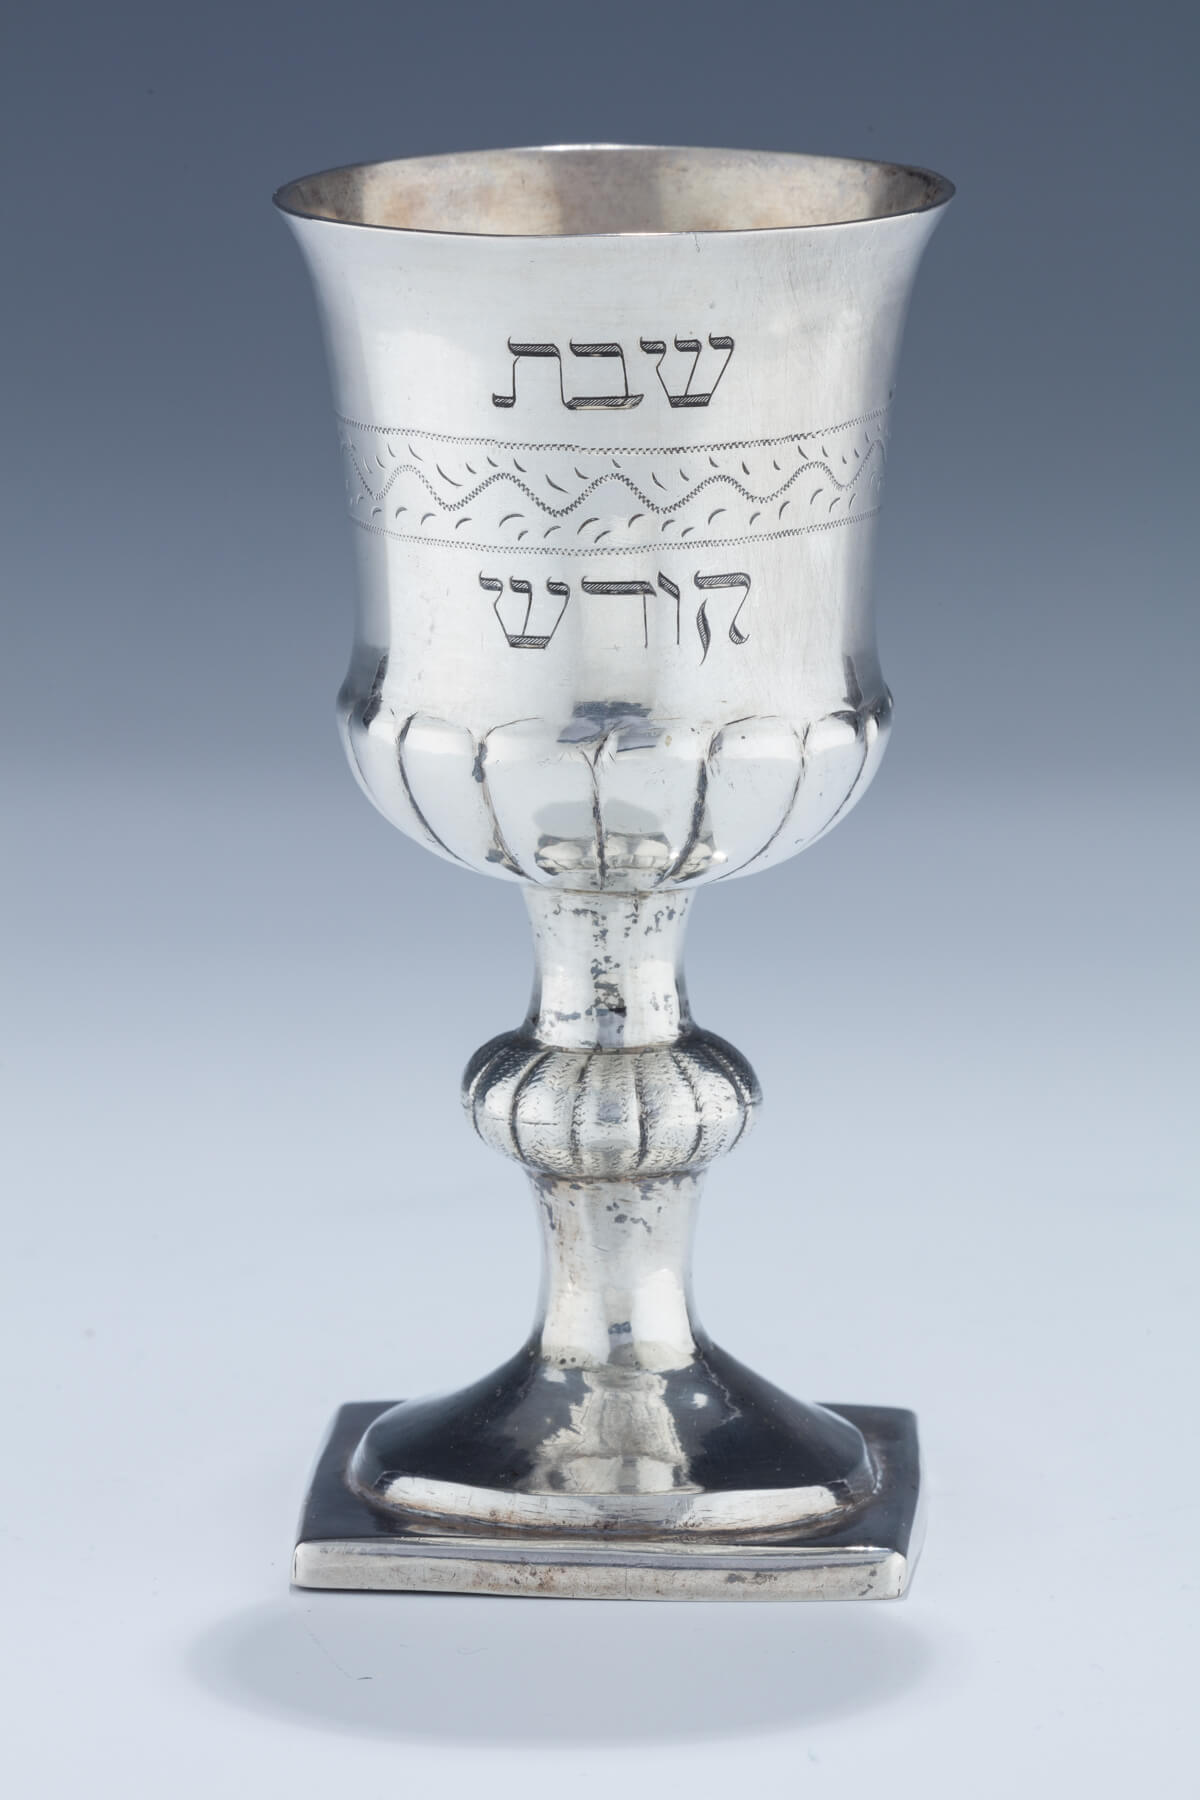 015. A Large Silver Kiddush Goblet